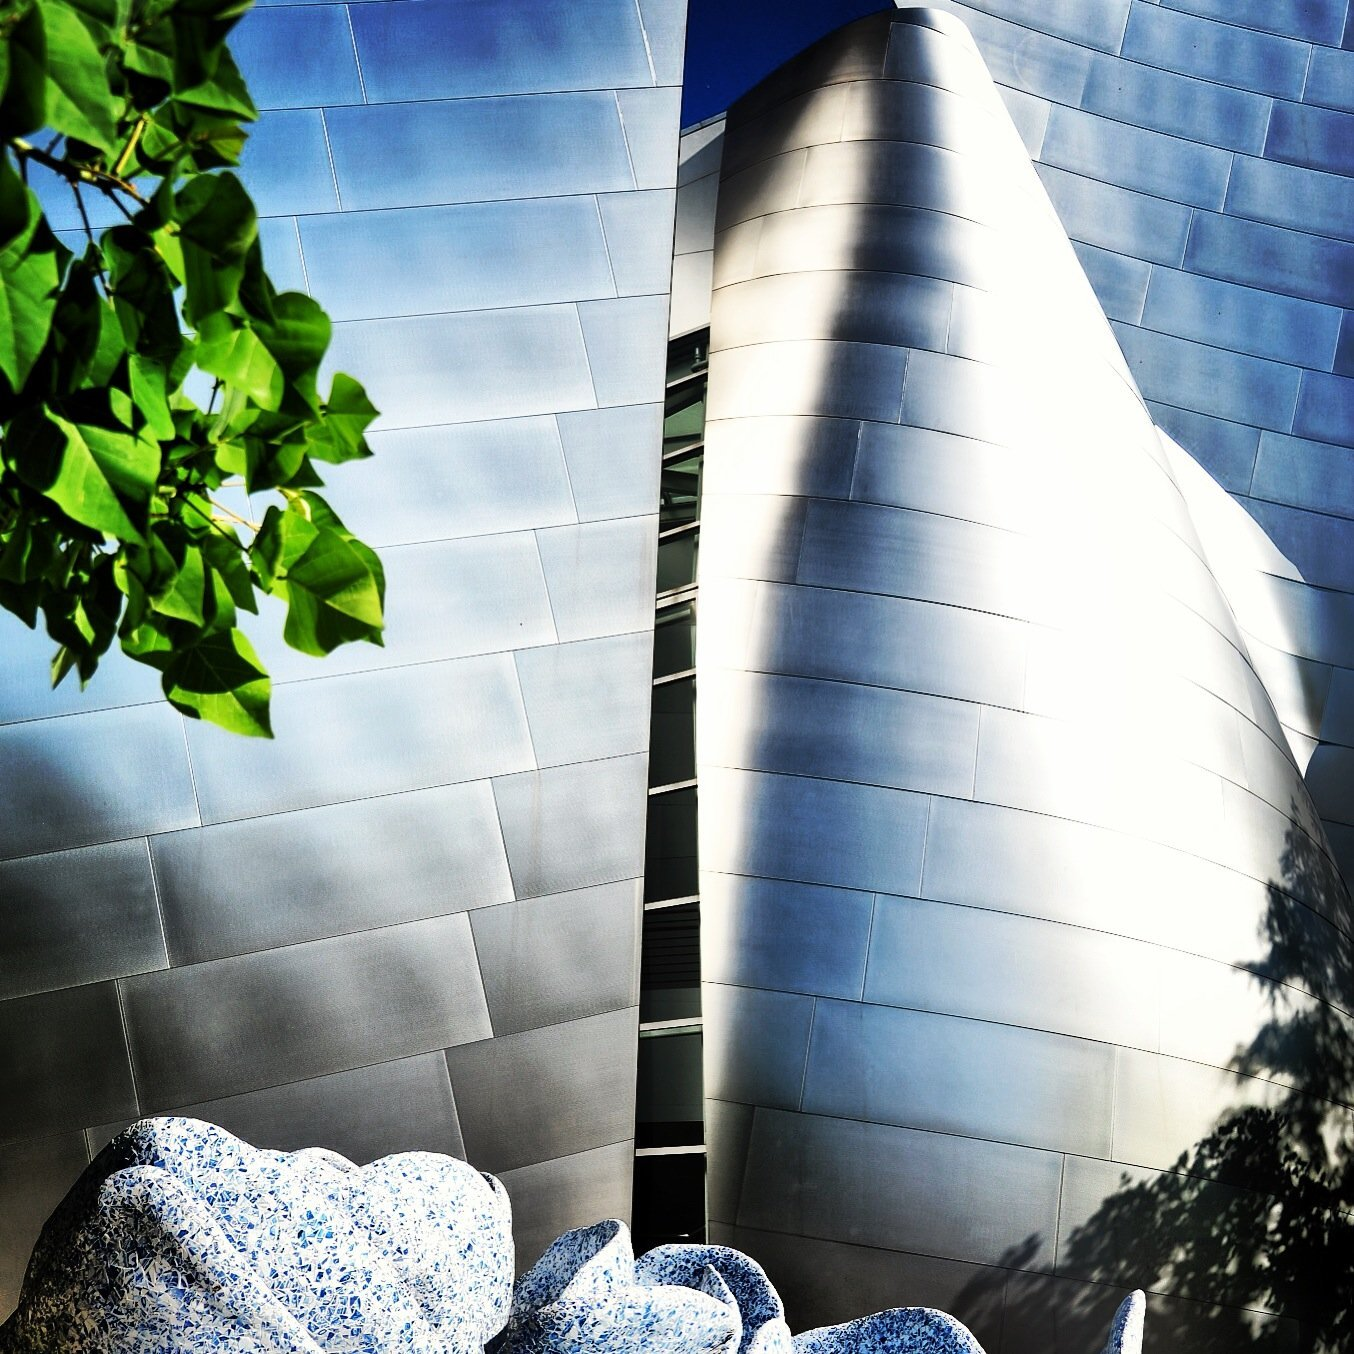 WALT DISNEY CONCERT HALL - WATER 1